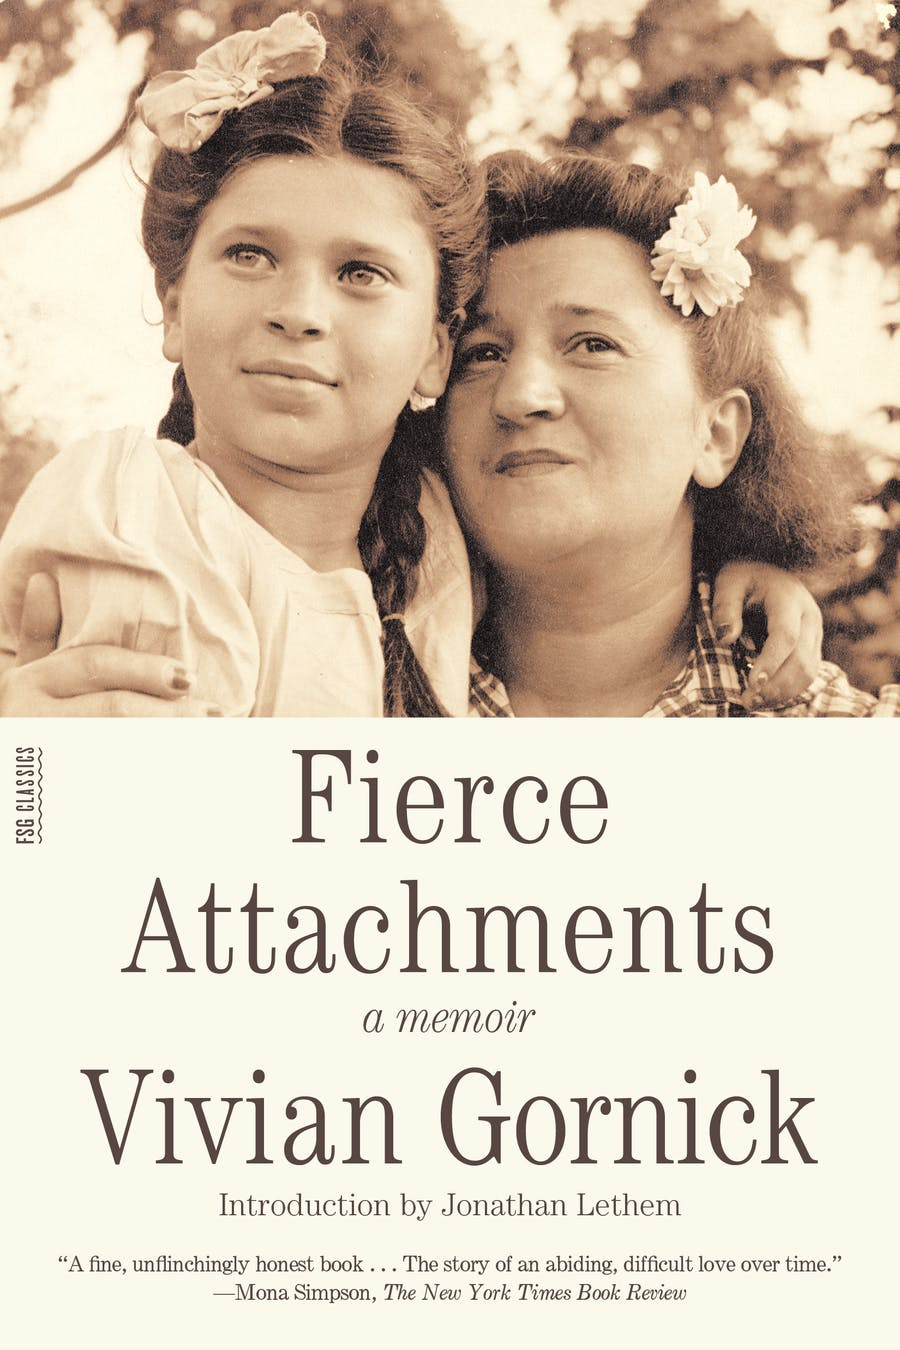 Fierce Attachments by Vivian Gornick; Introduction by Jonathan Lethem